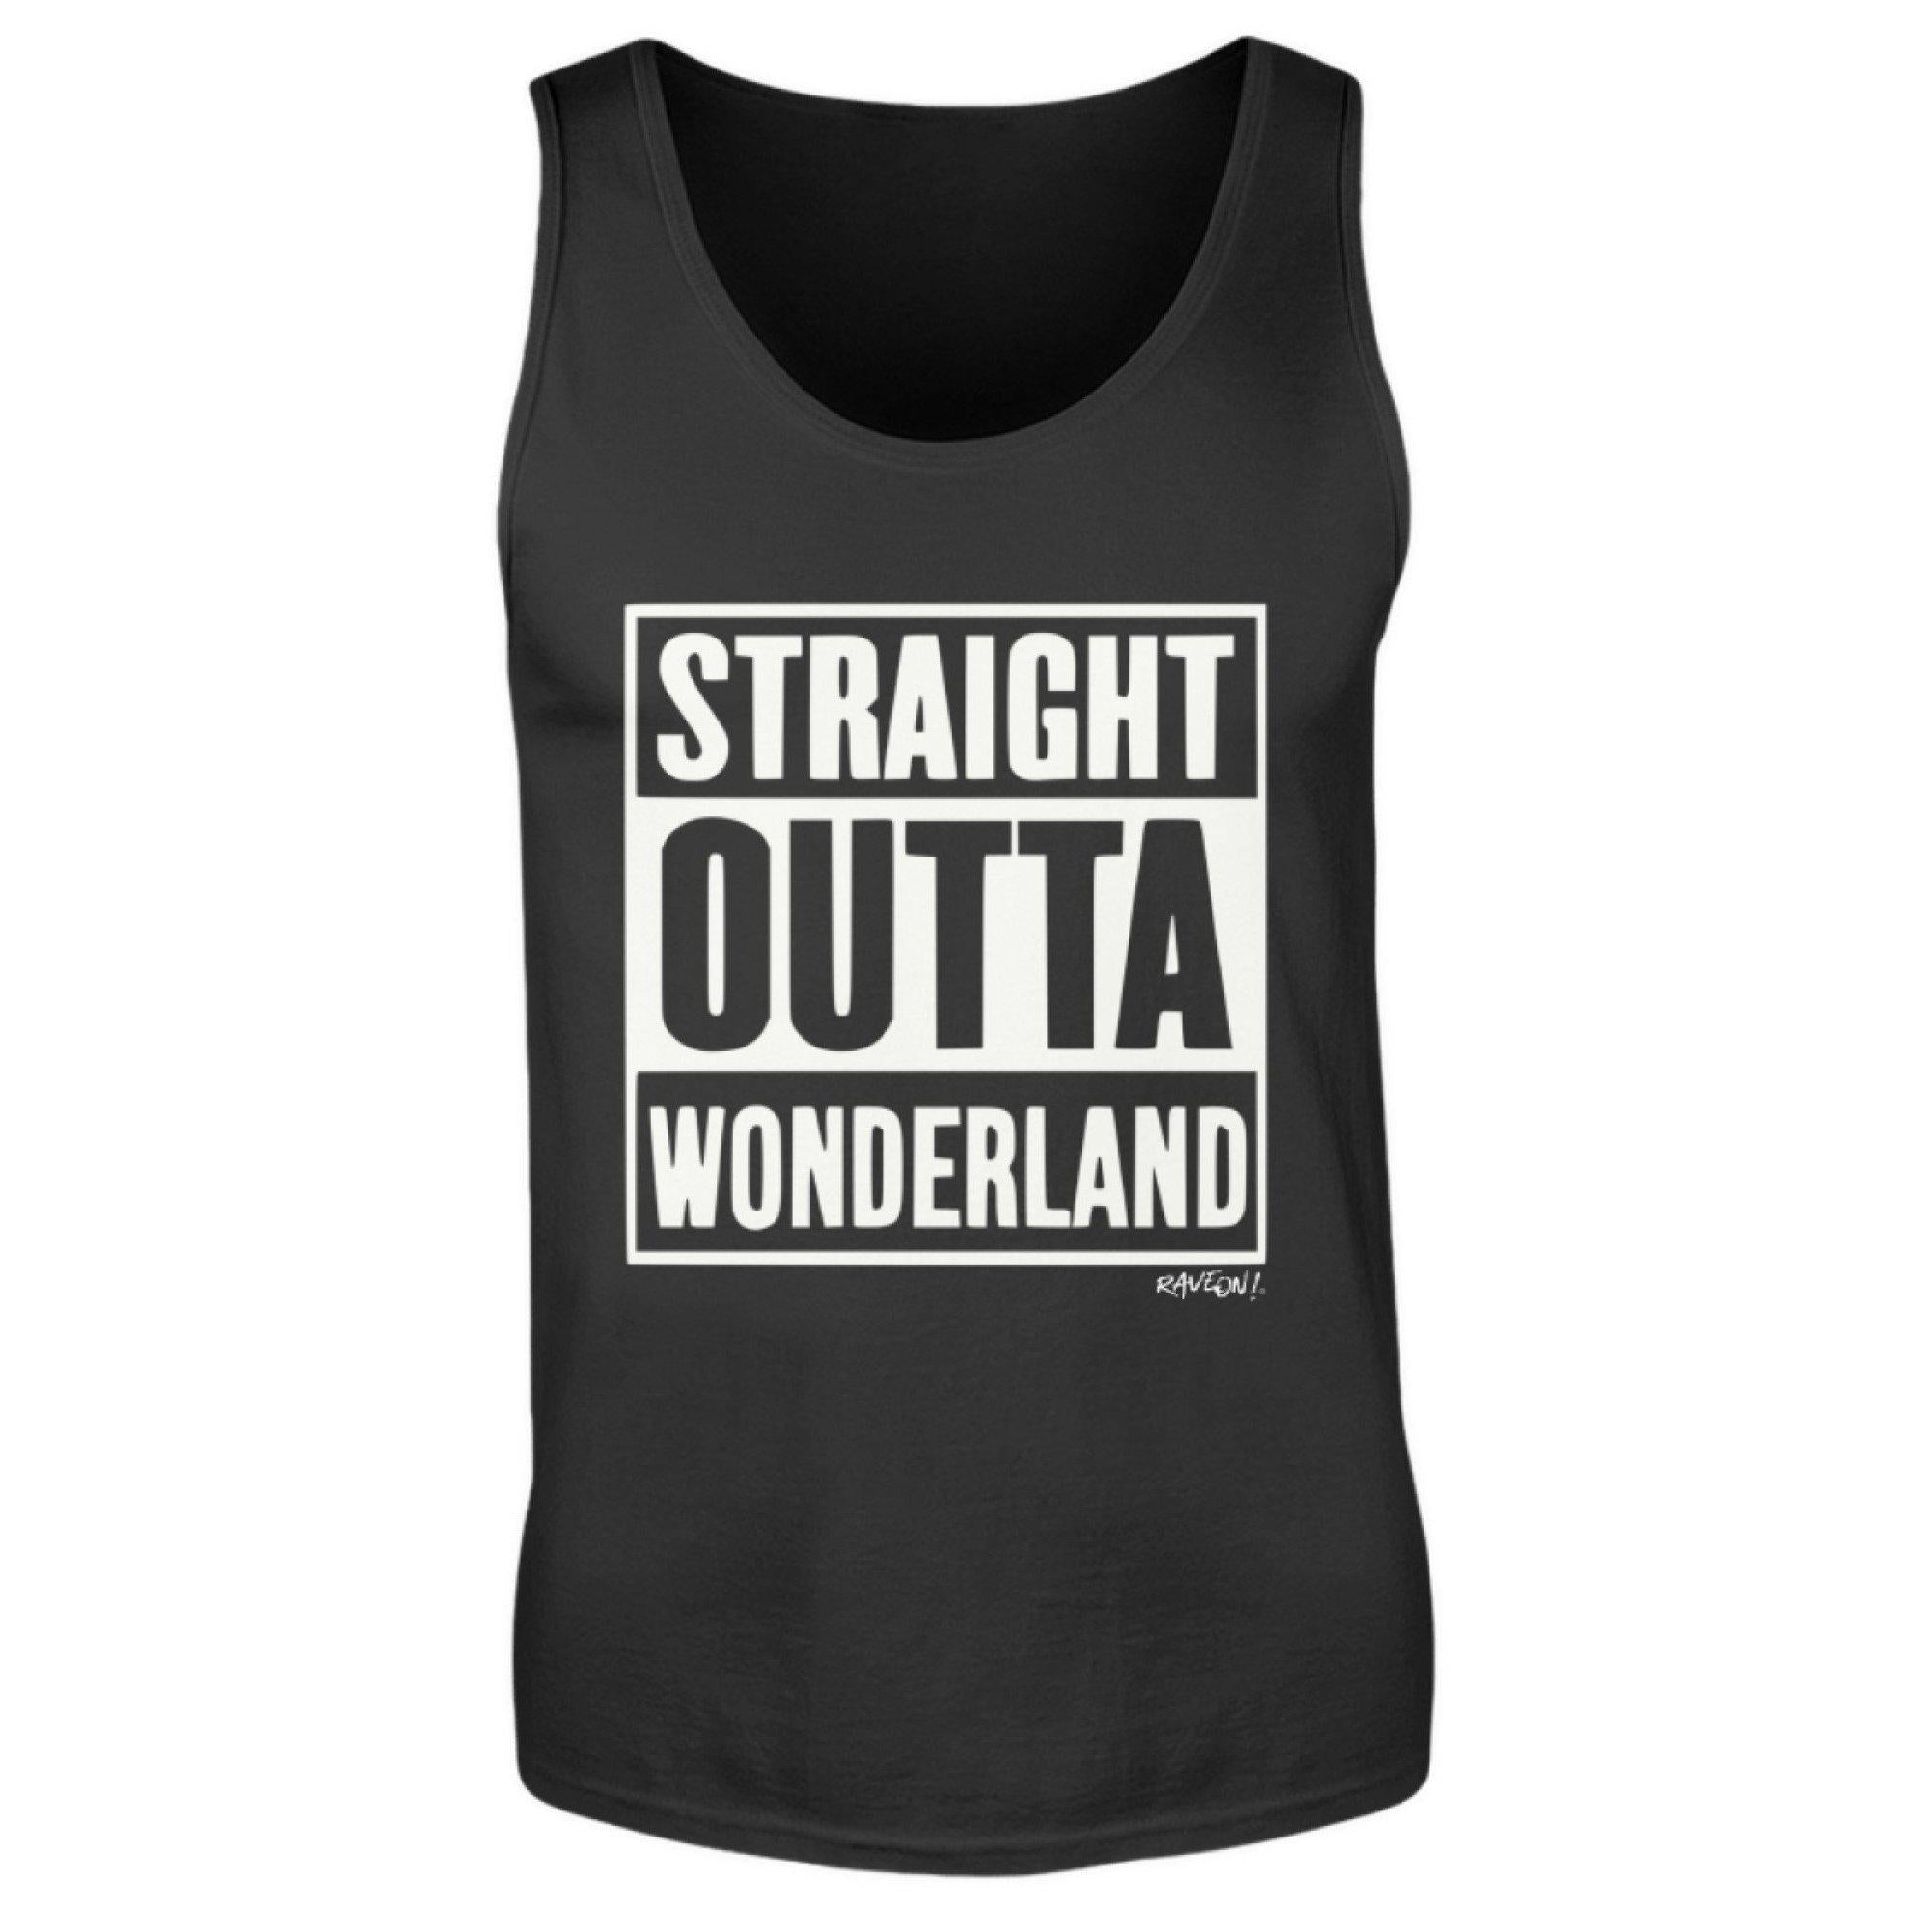 STRAIGHT OUTTA WONDERLAND - Rave On!® - Herren Tanktop Herren Tank-Top Black / S - Rave On!® der Club & Techno Szene Shop für Coole Junge Mode Streetwear Style & Fashion Outfits + Sexy Festival 420 Stuff